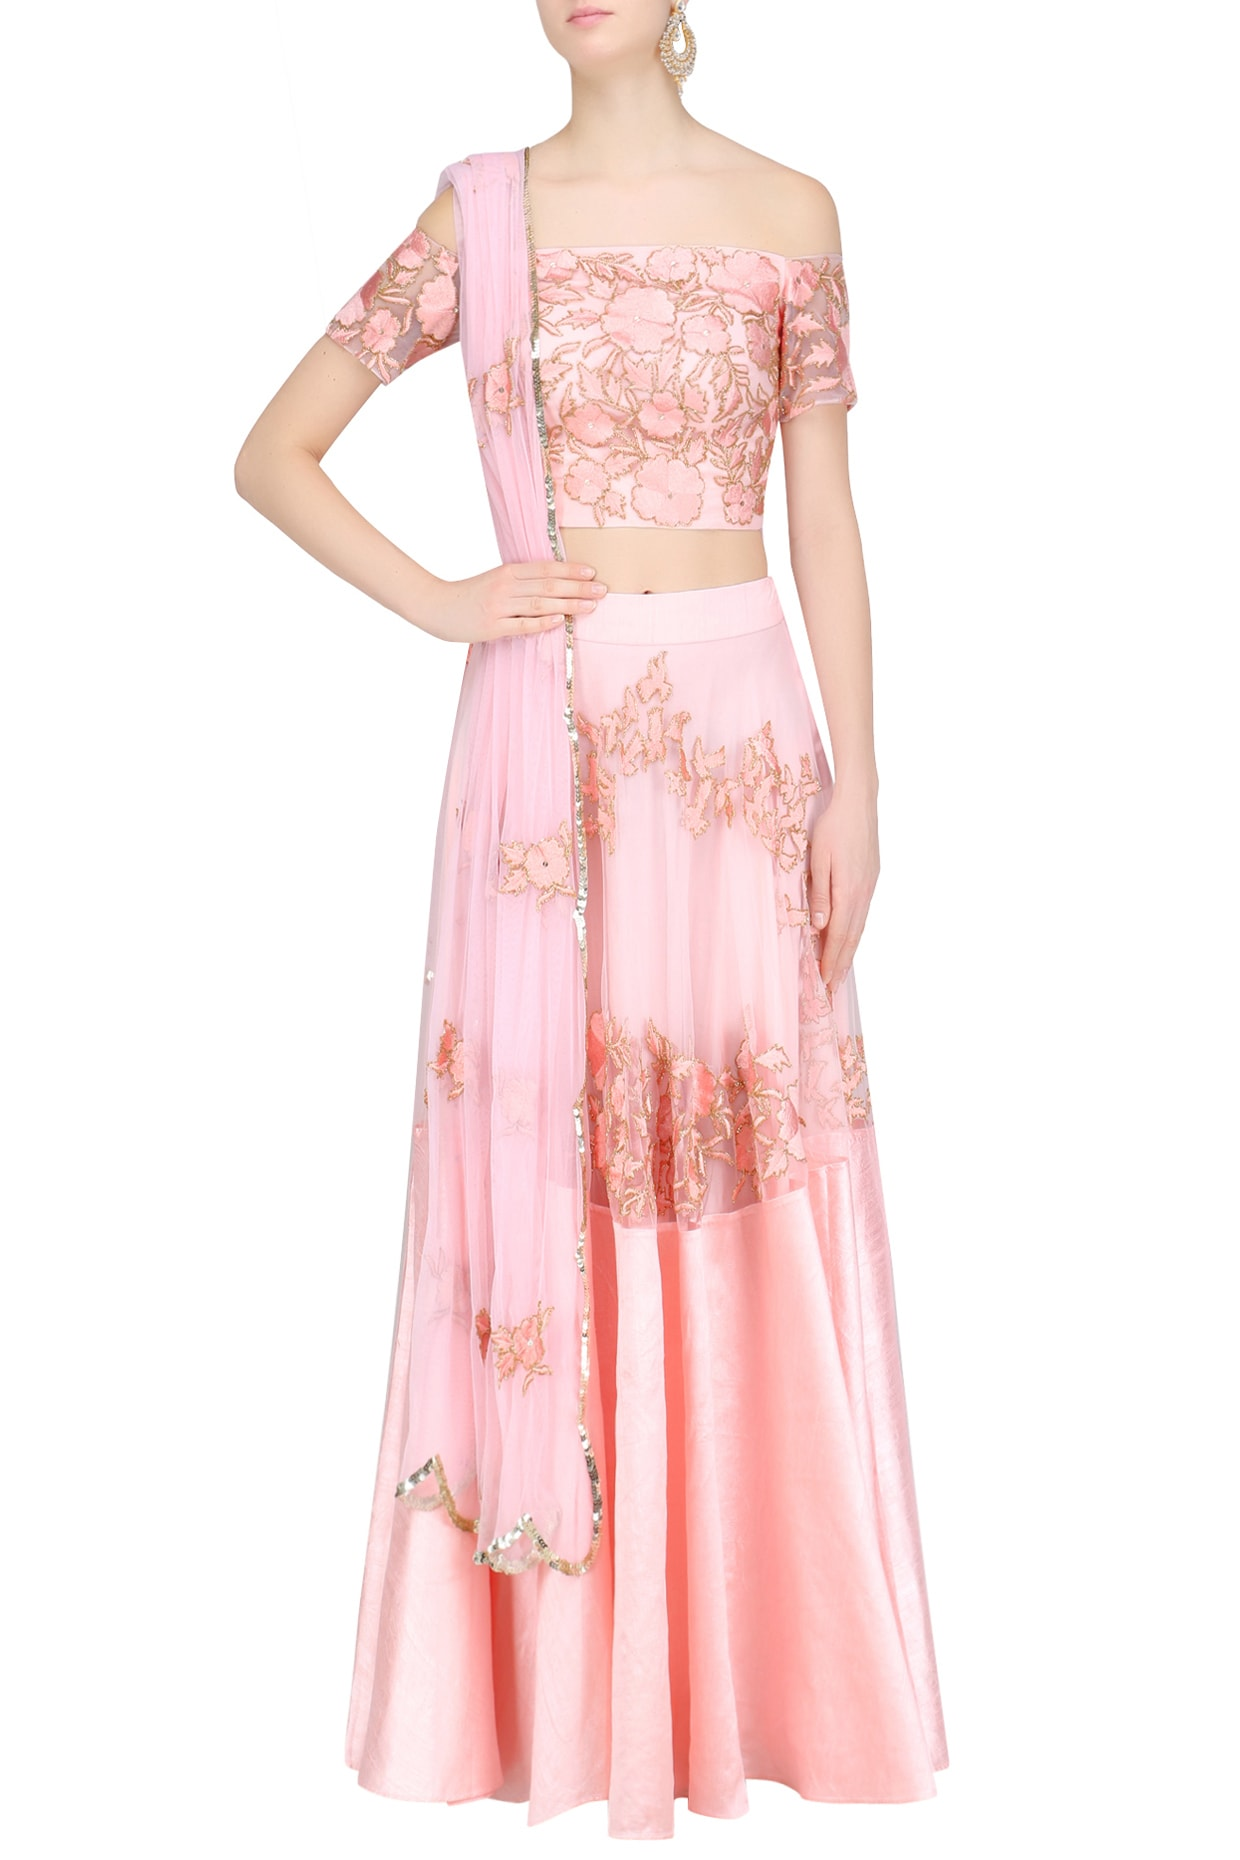 dbf60bc070b4fd Pink floral and birds embroidered off shoulder blouse and lehenga set  available only at Pernia's Pop Up Shop.